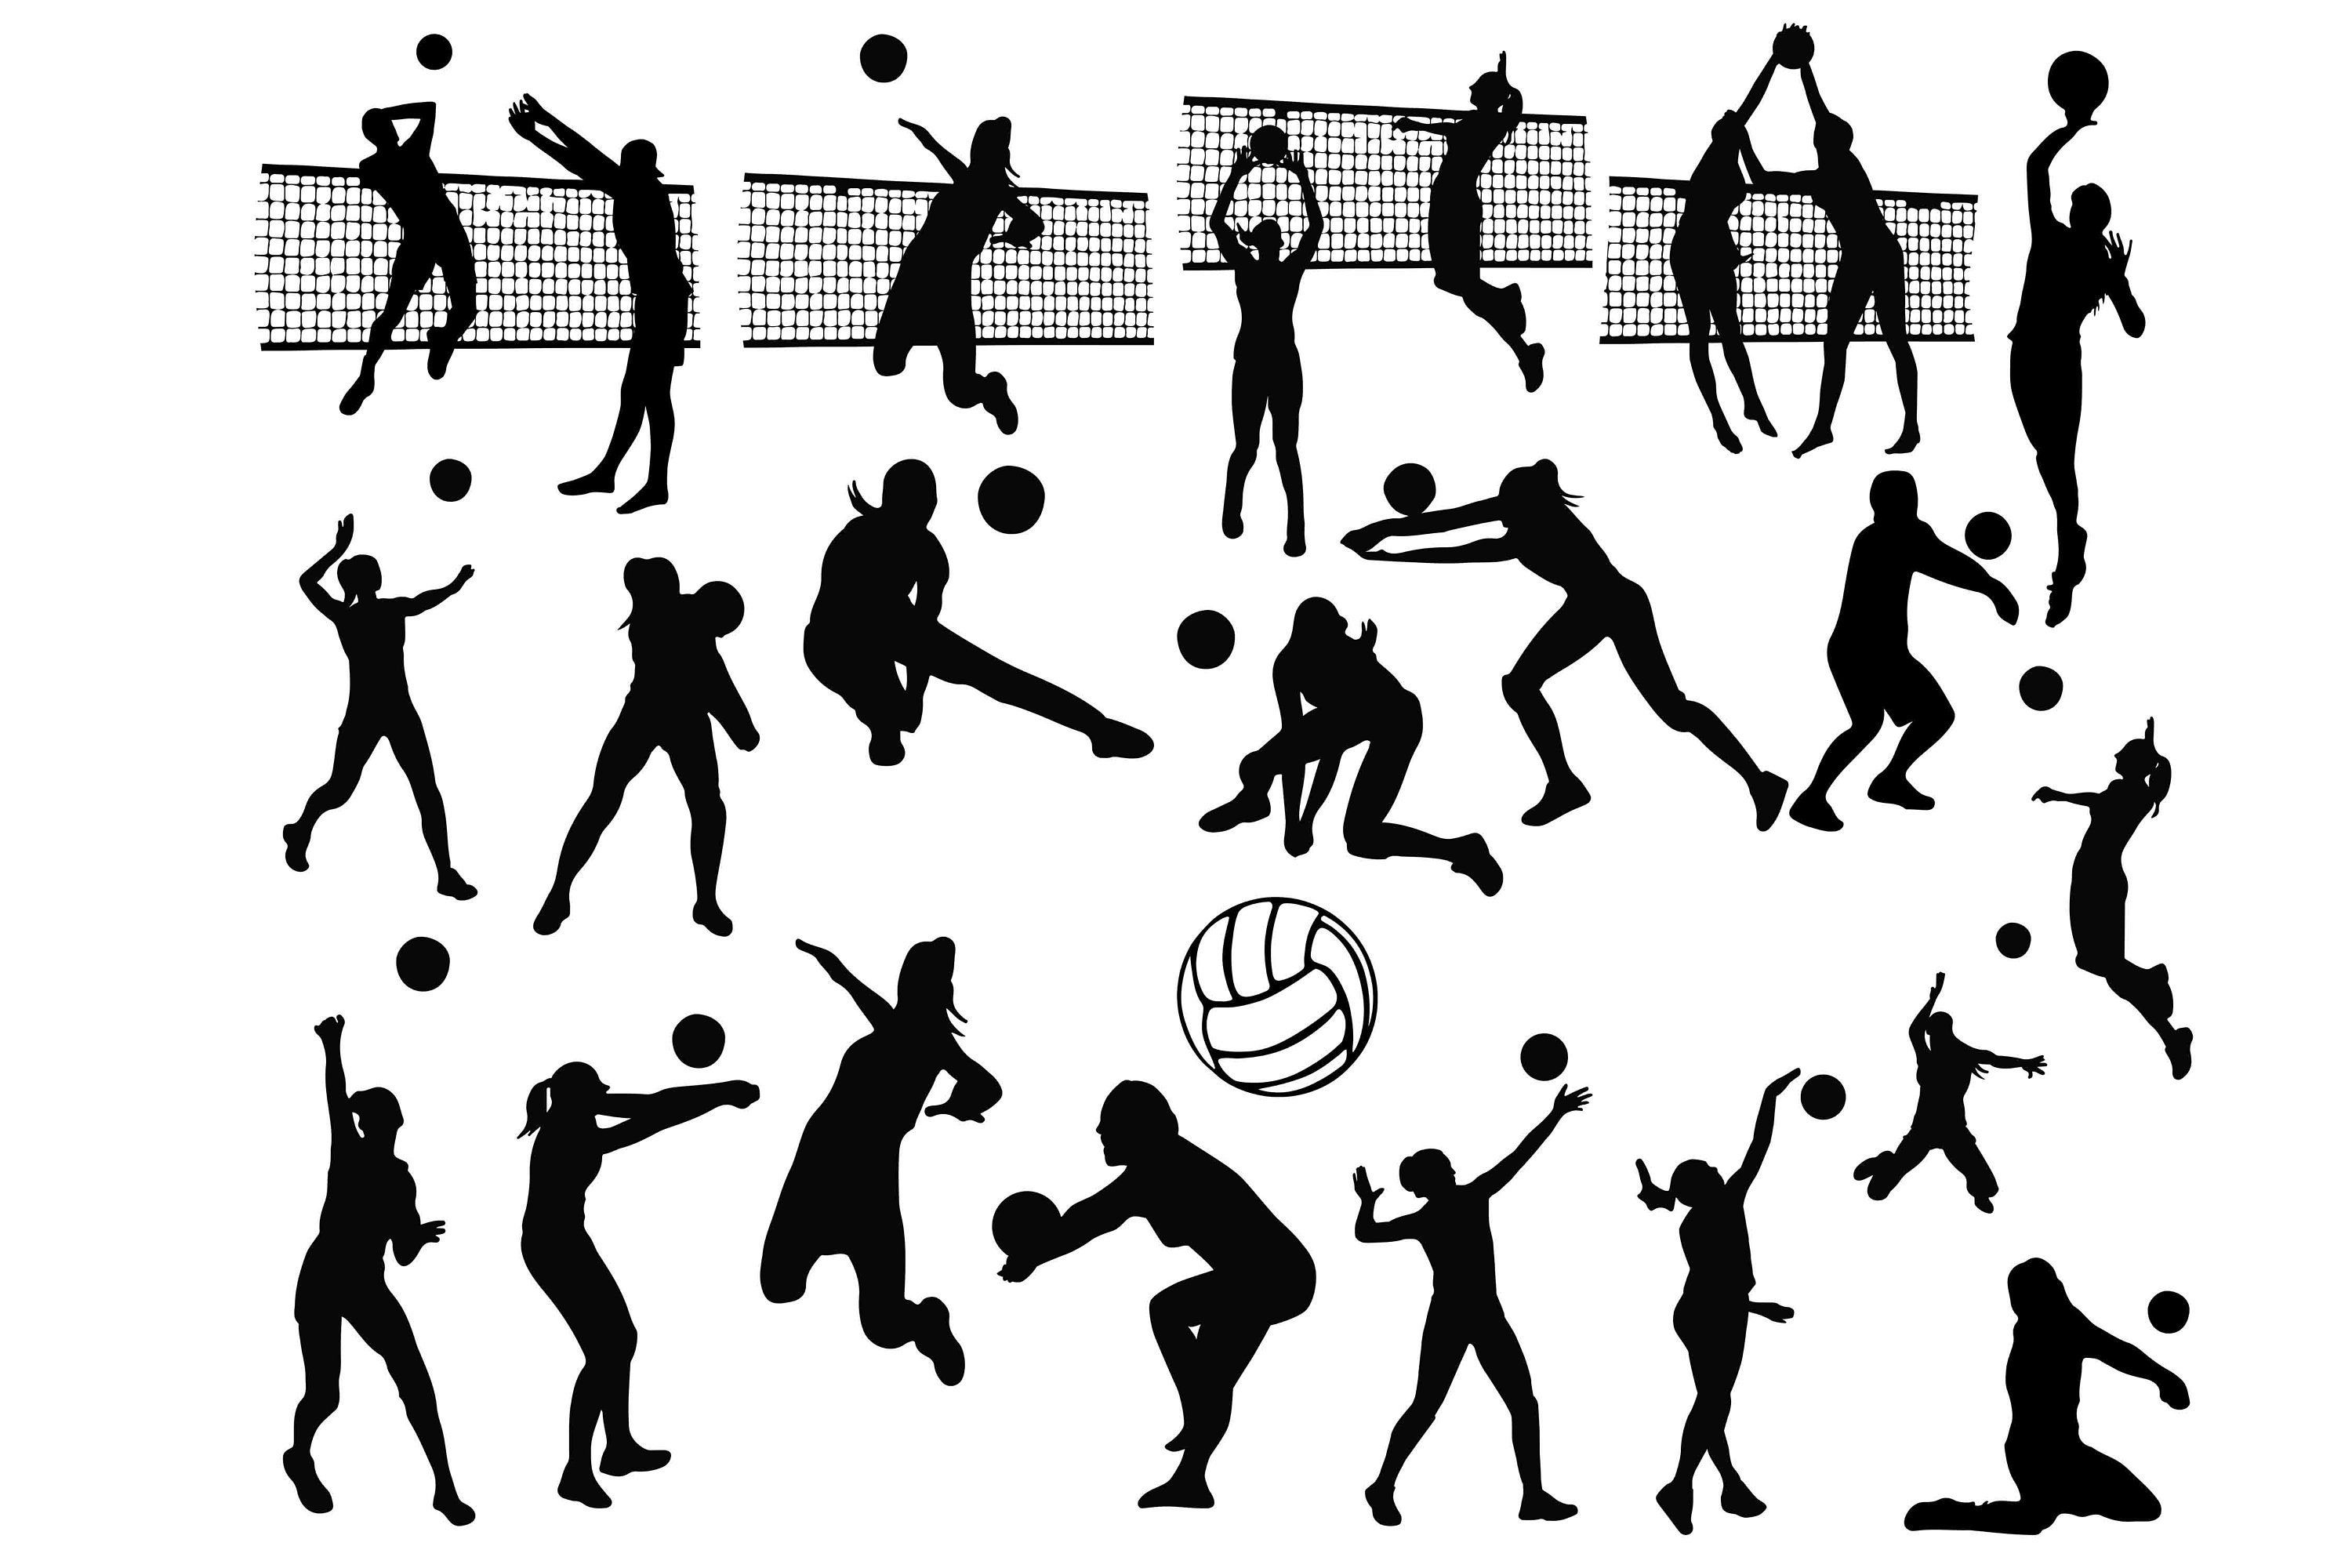 Volleyball Silhouettes Volleyball Clip Art Sports Etsy In 2020 Silhouette Svg Volleyball Silhouette Svg